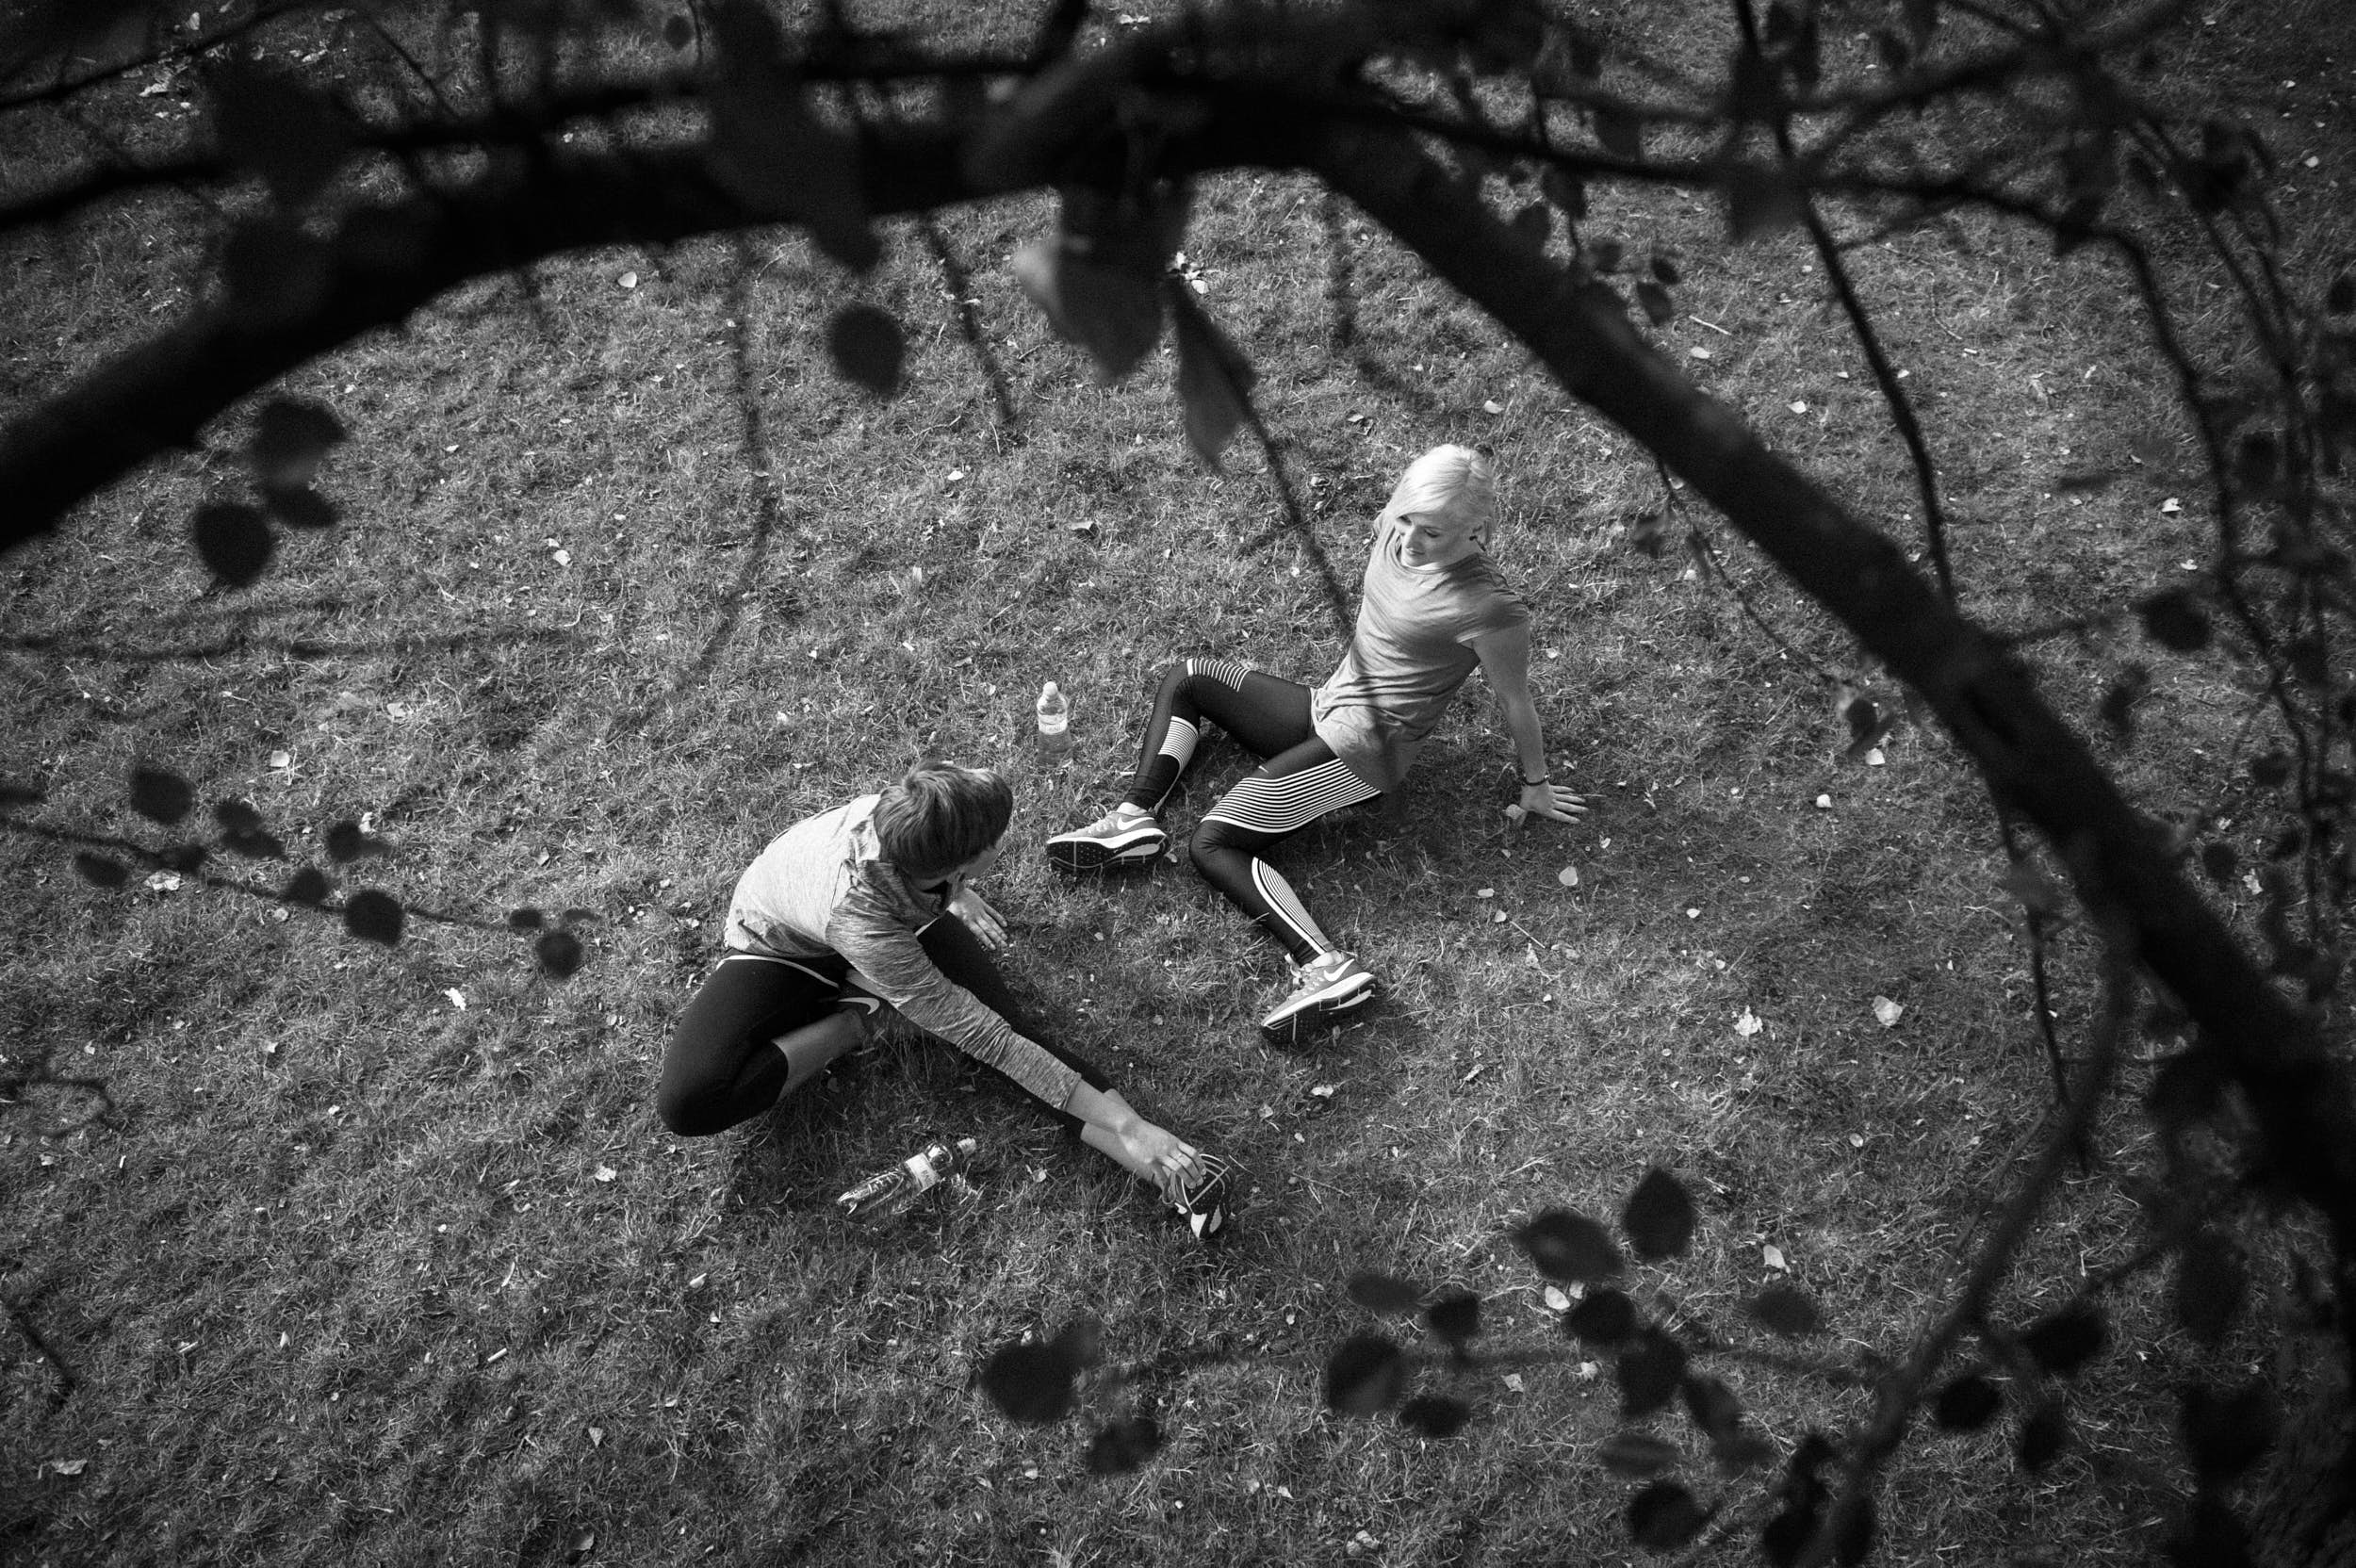 Sports photography: two girls stretching after a run. Shot from elevated perspective with tree branches in the picture.